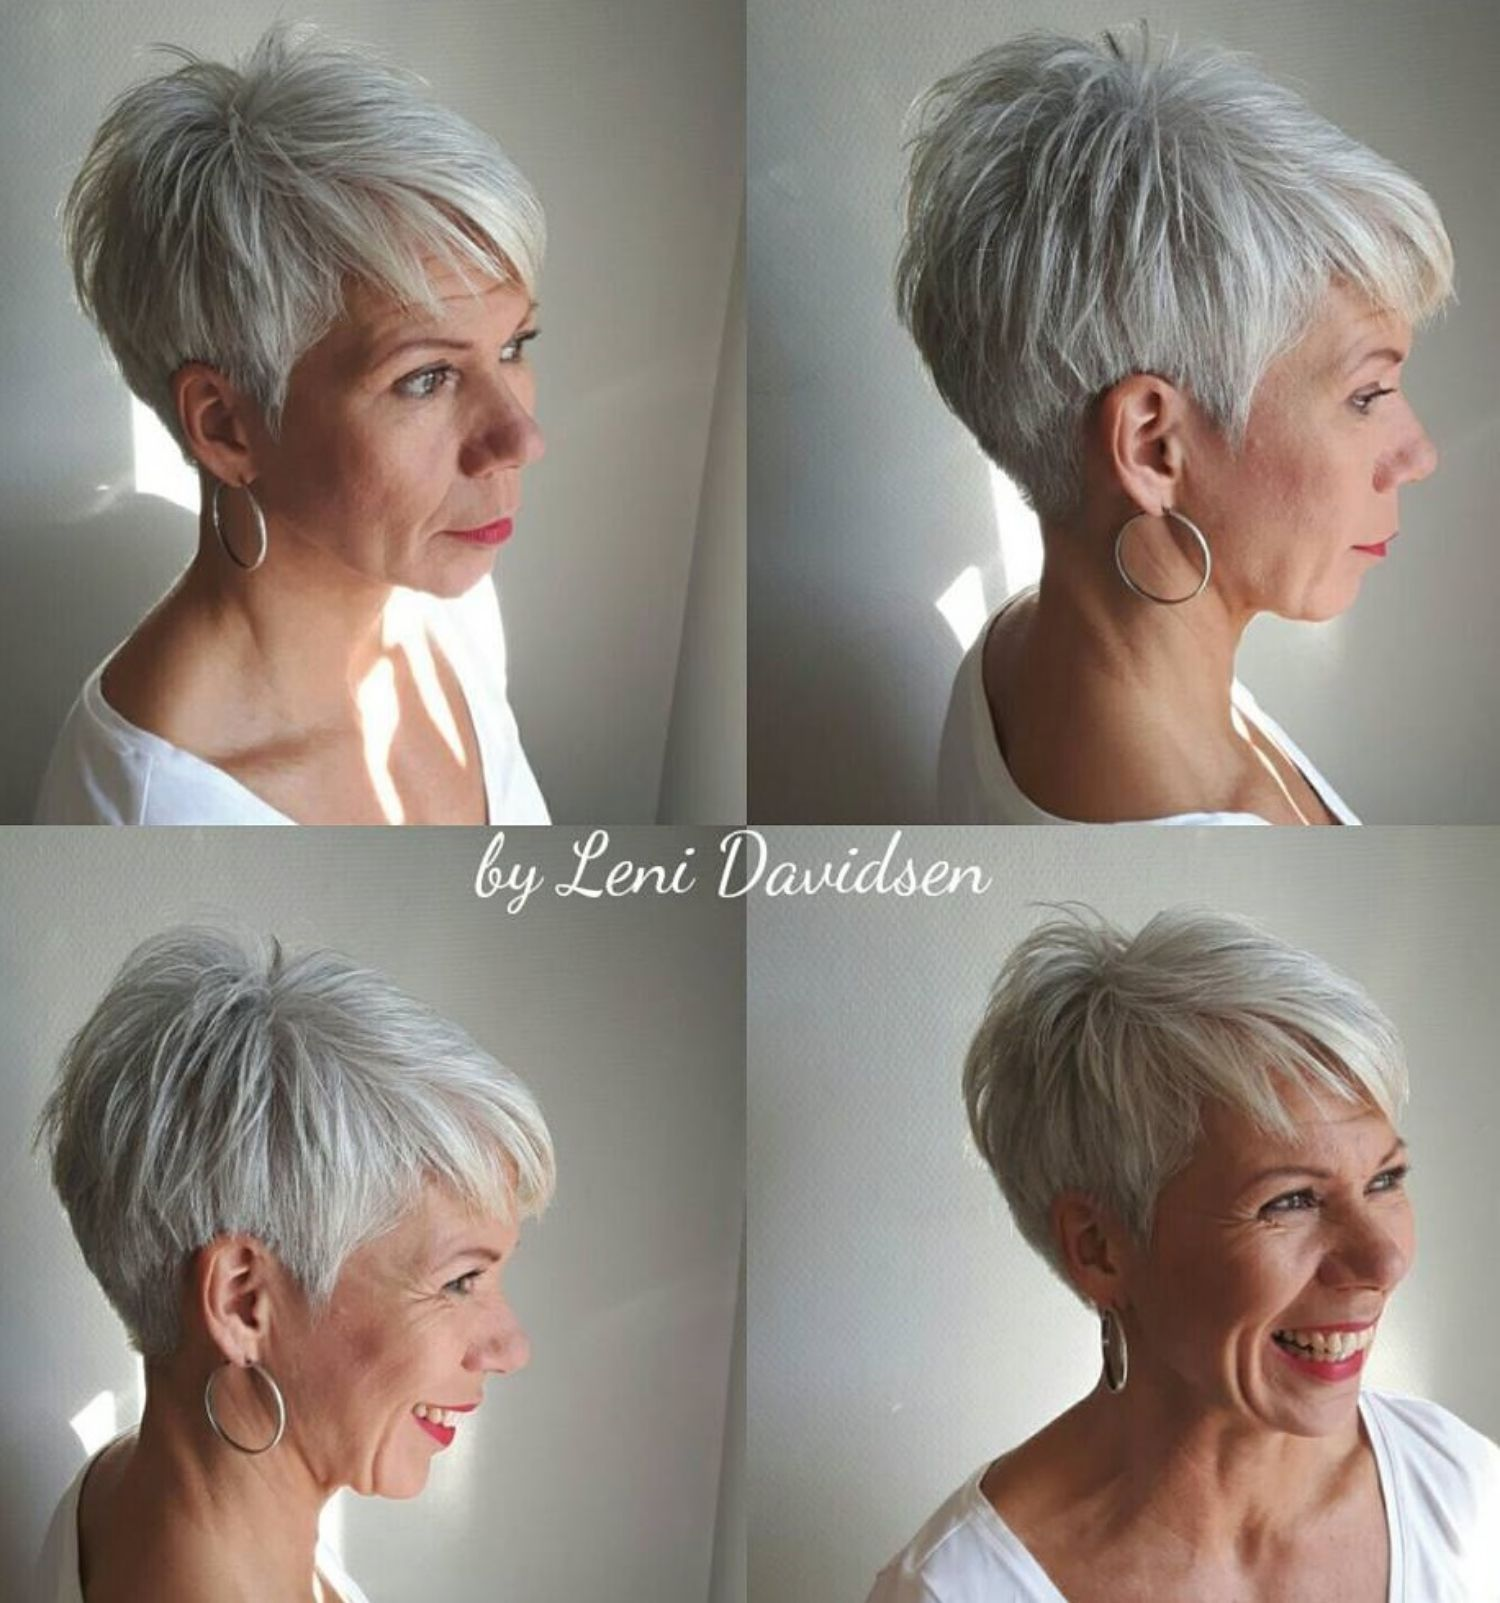 Show Me Short Hairstyles Hot Pixie Haircuts Hairstyles For Very Short Hair Gorgeous Gray Hair Chic Short Haircuts Short Grey Hair